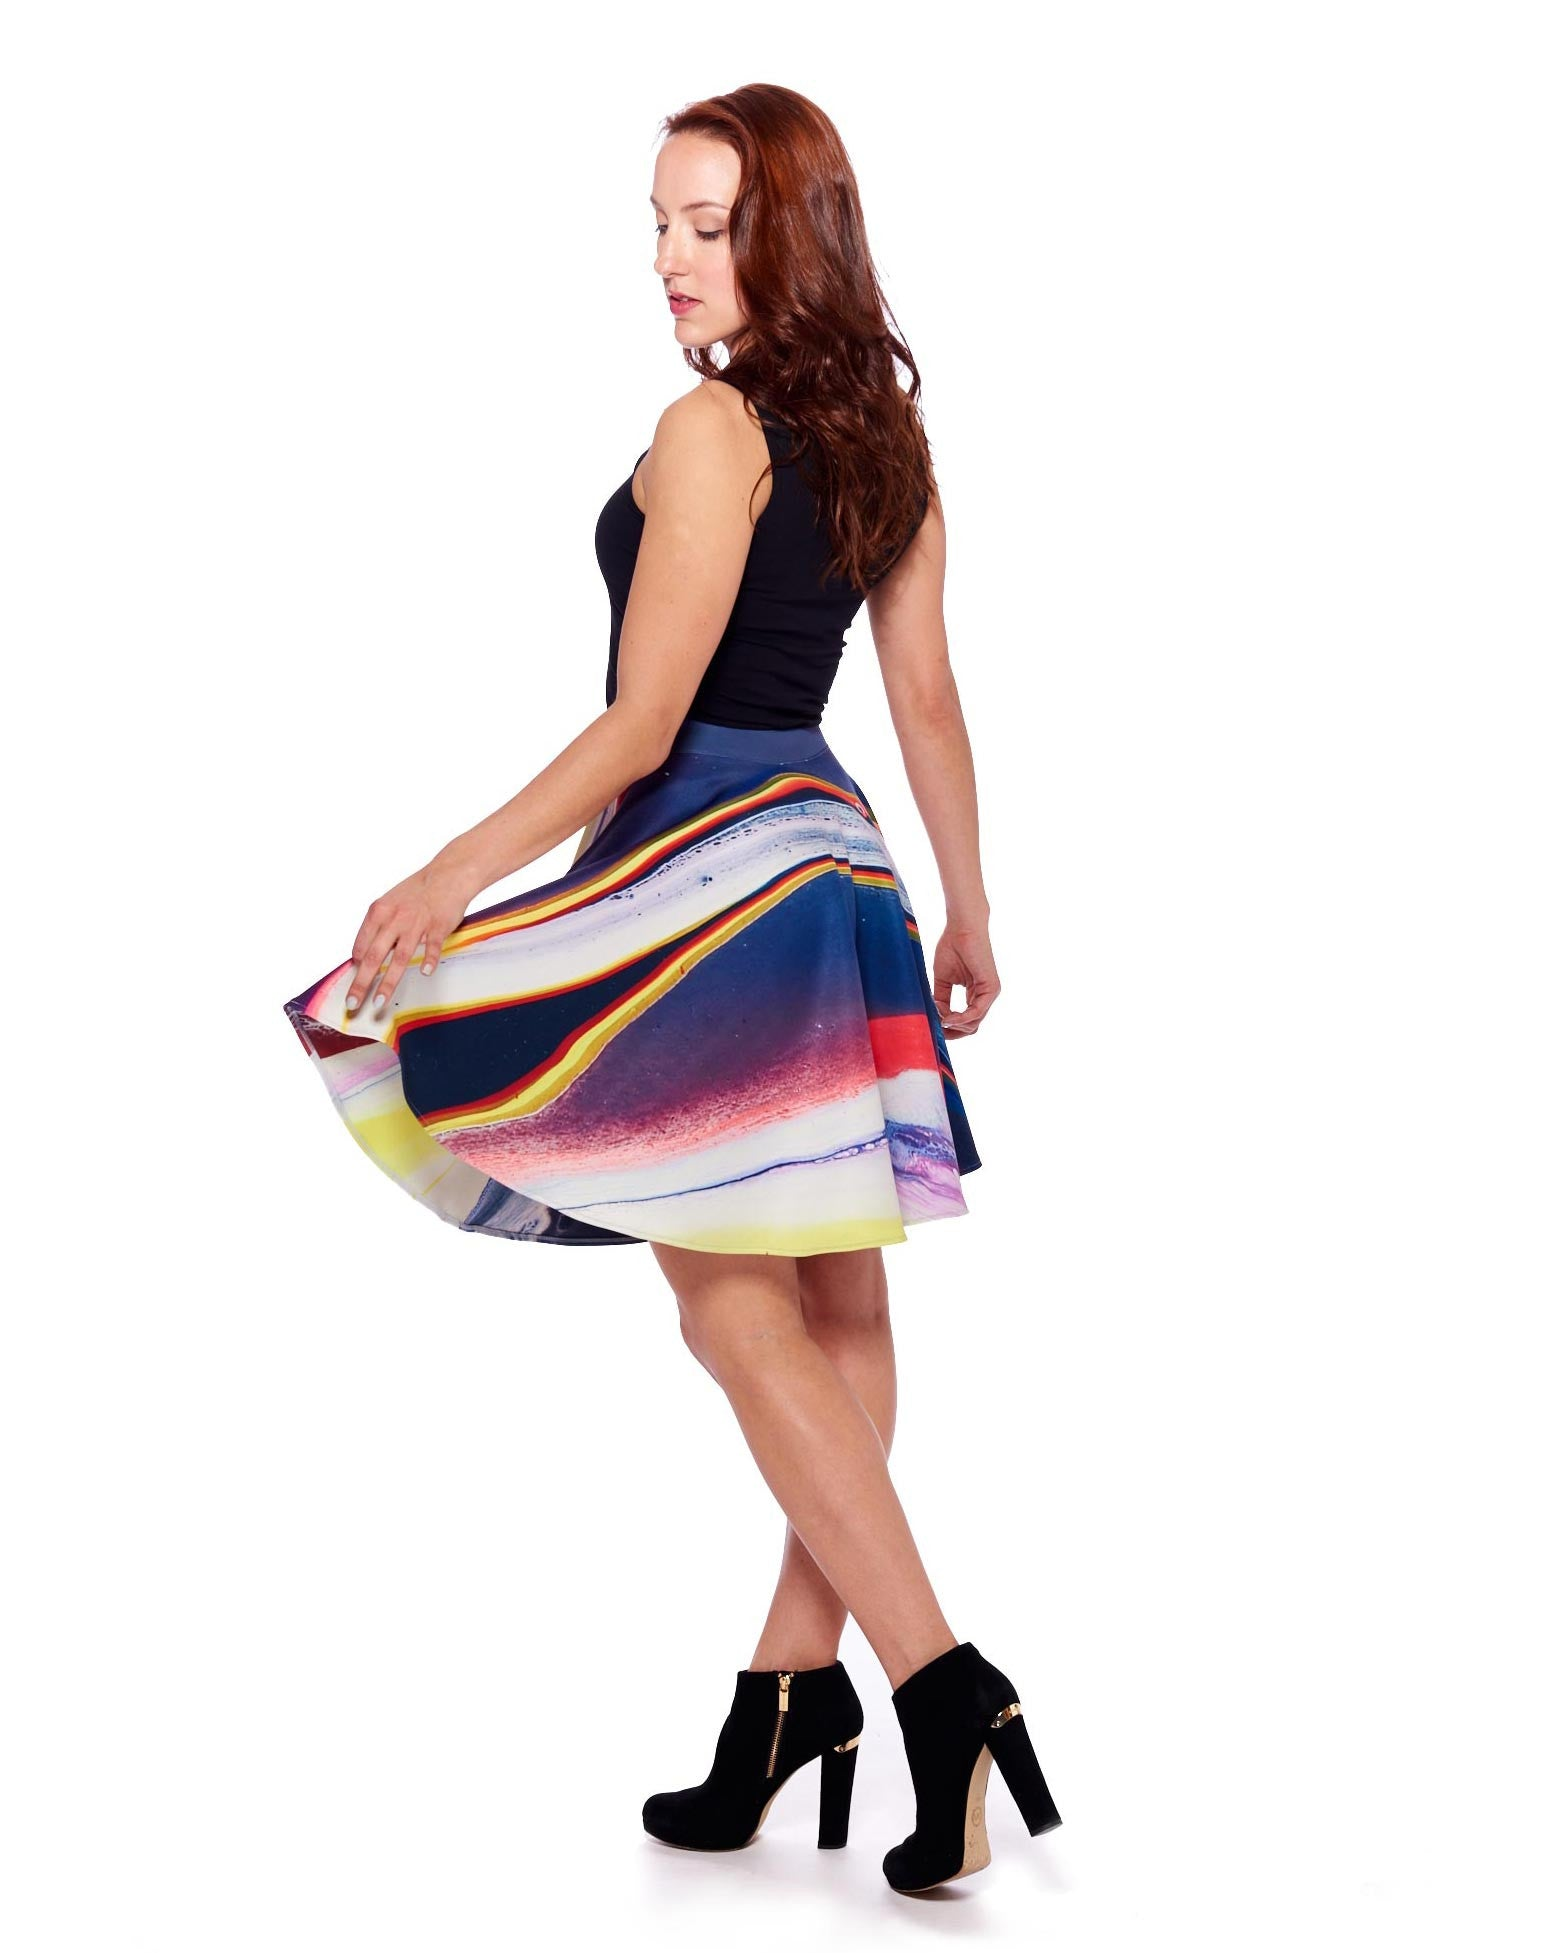 New Planet II Circle Skirt - Nuvango Gallery & Goods - 5